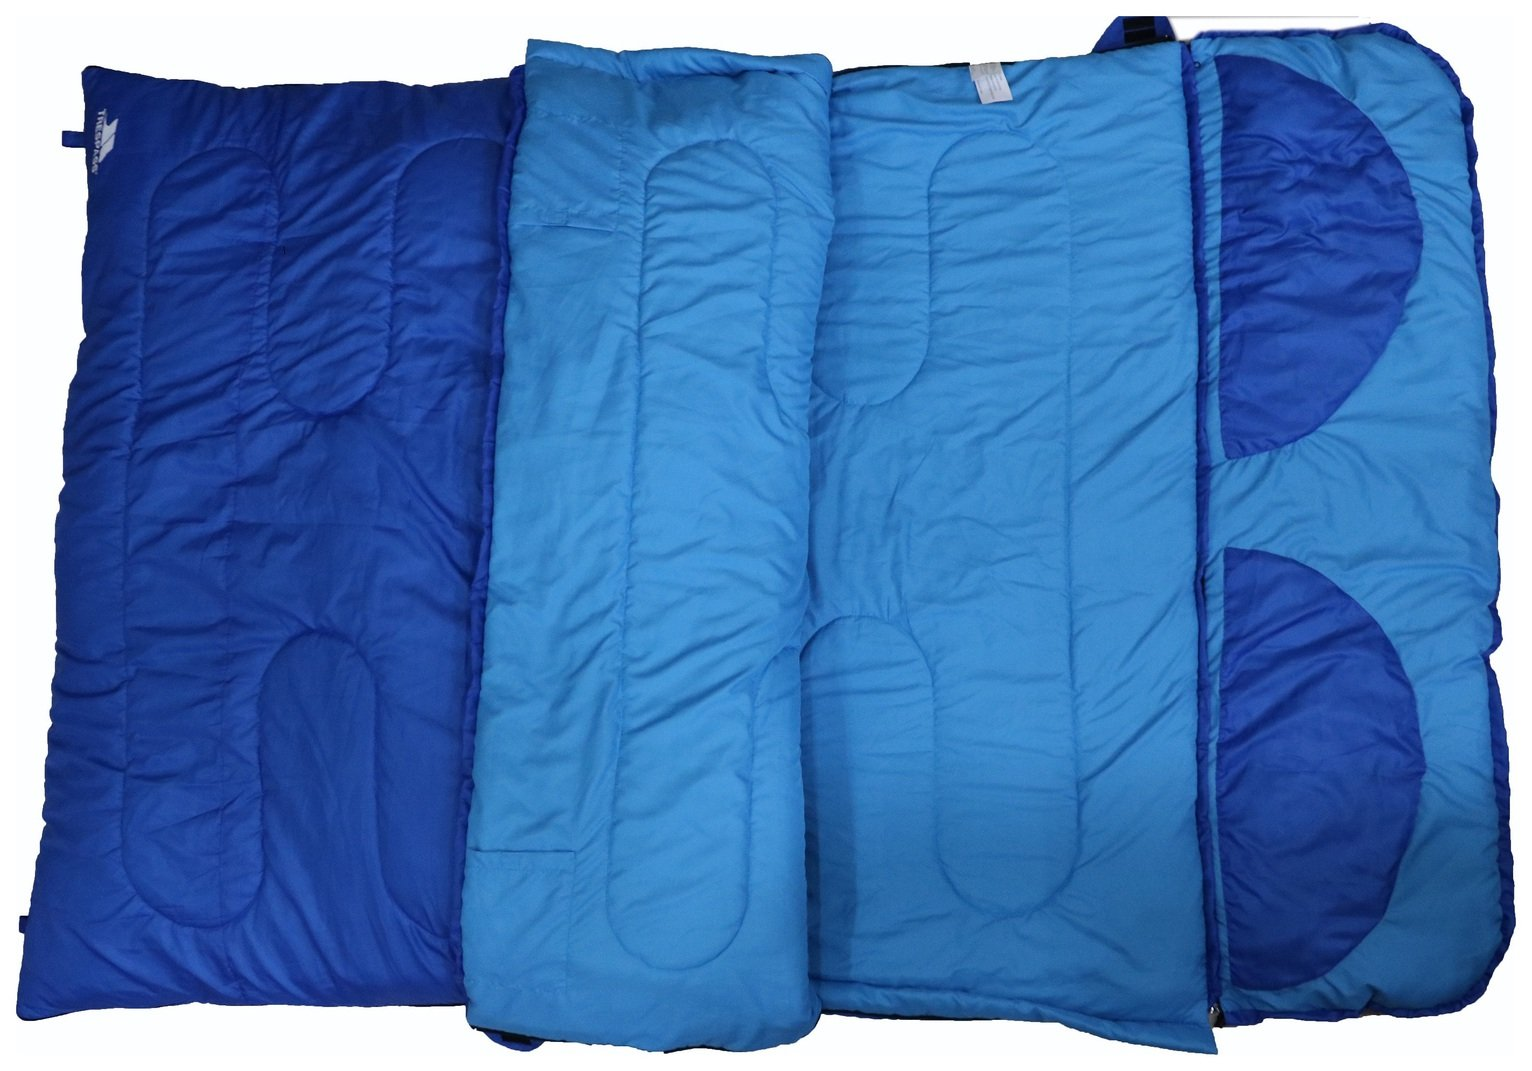 Trespass Double Envelope 300GSM Sleeping Bag